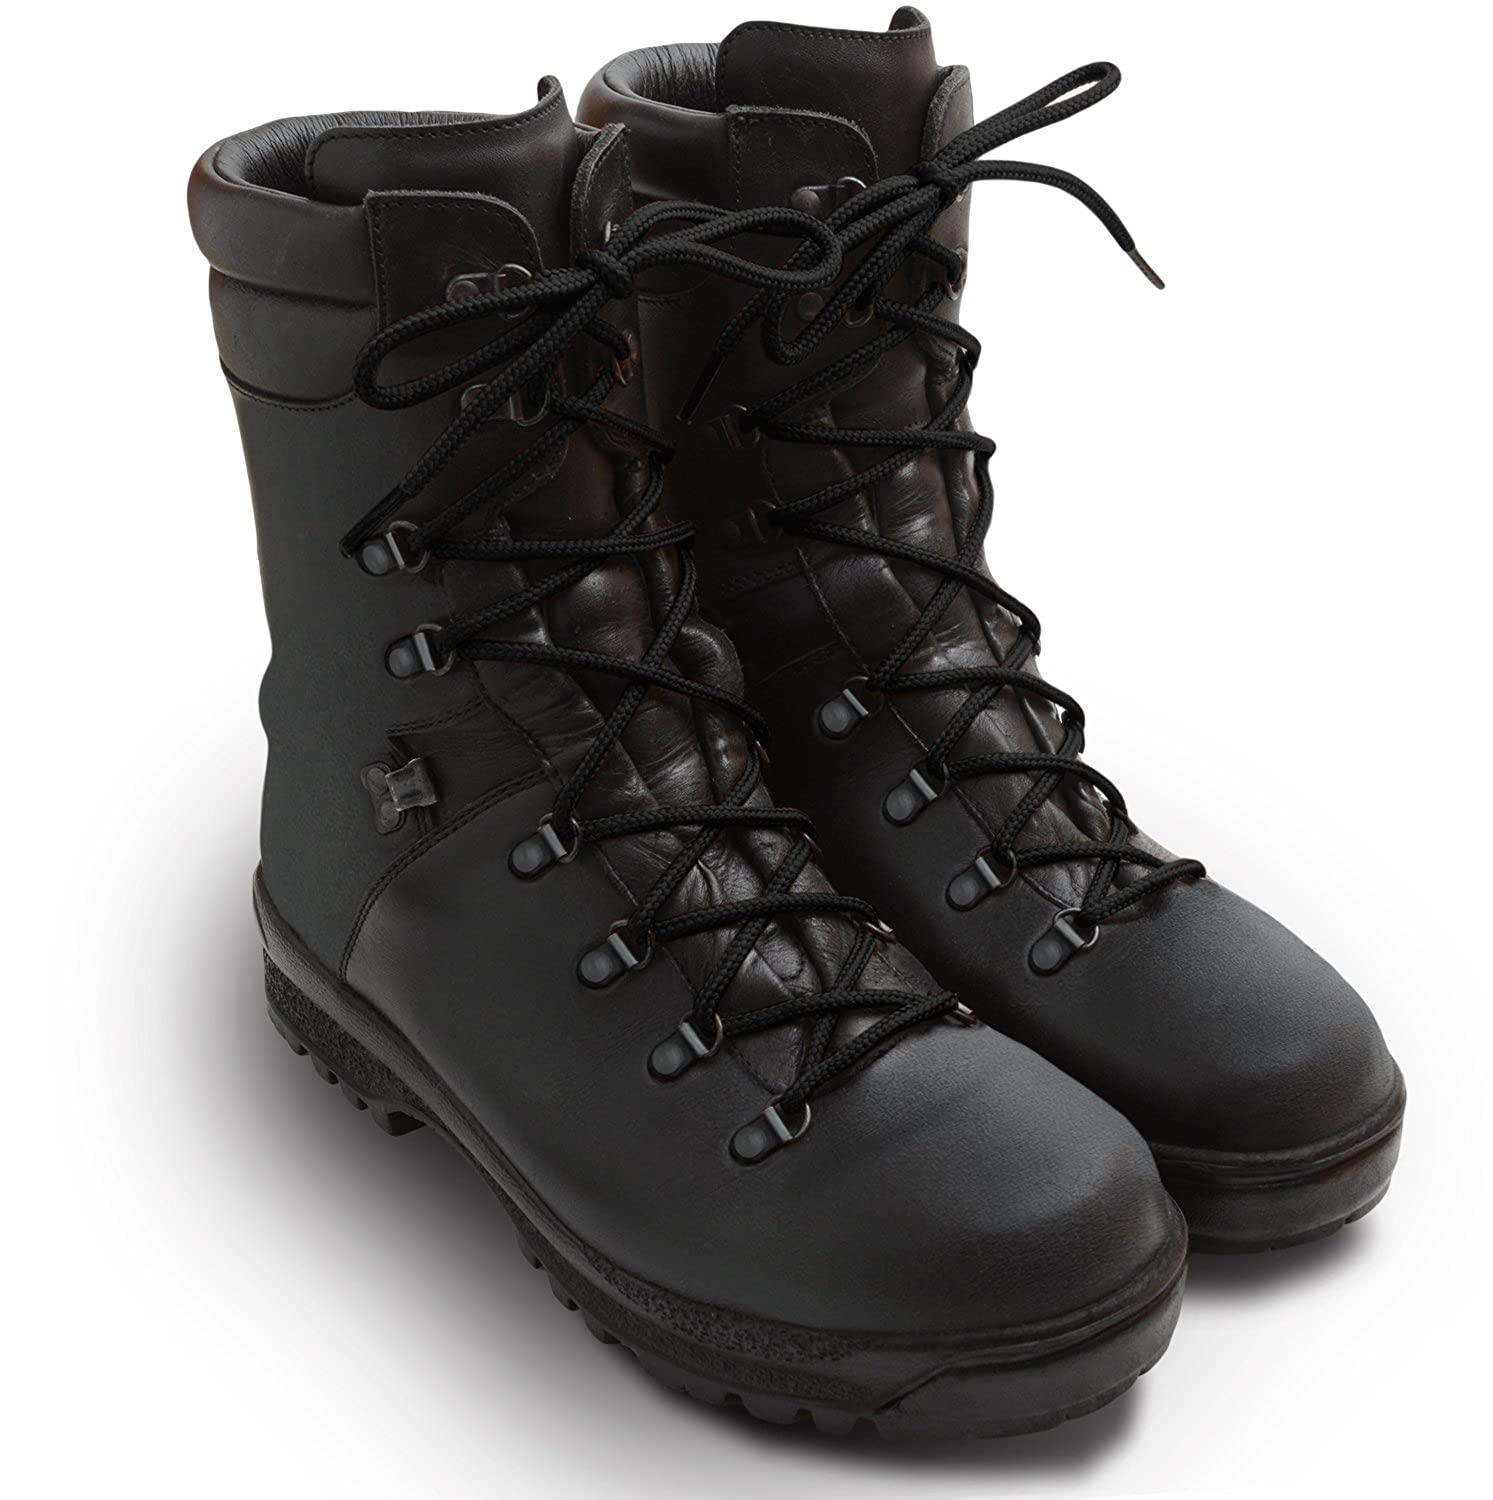 Heavy Duty and Durable Shoelaces for Boots Miscly Round Boot Laces Work Boots /& Hiking Shoes 1 Pair